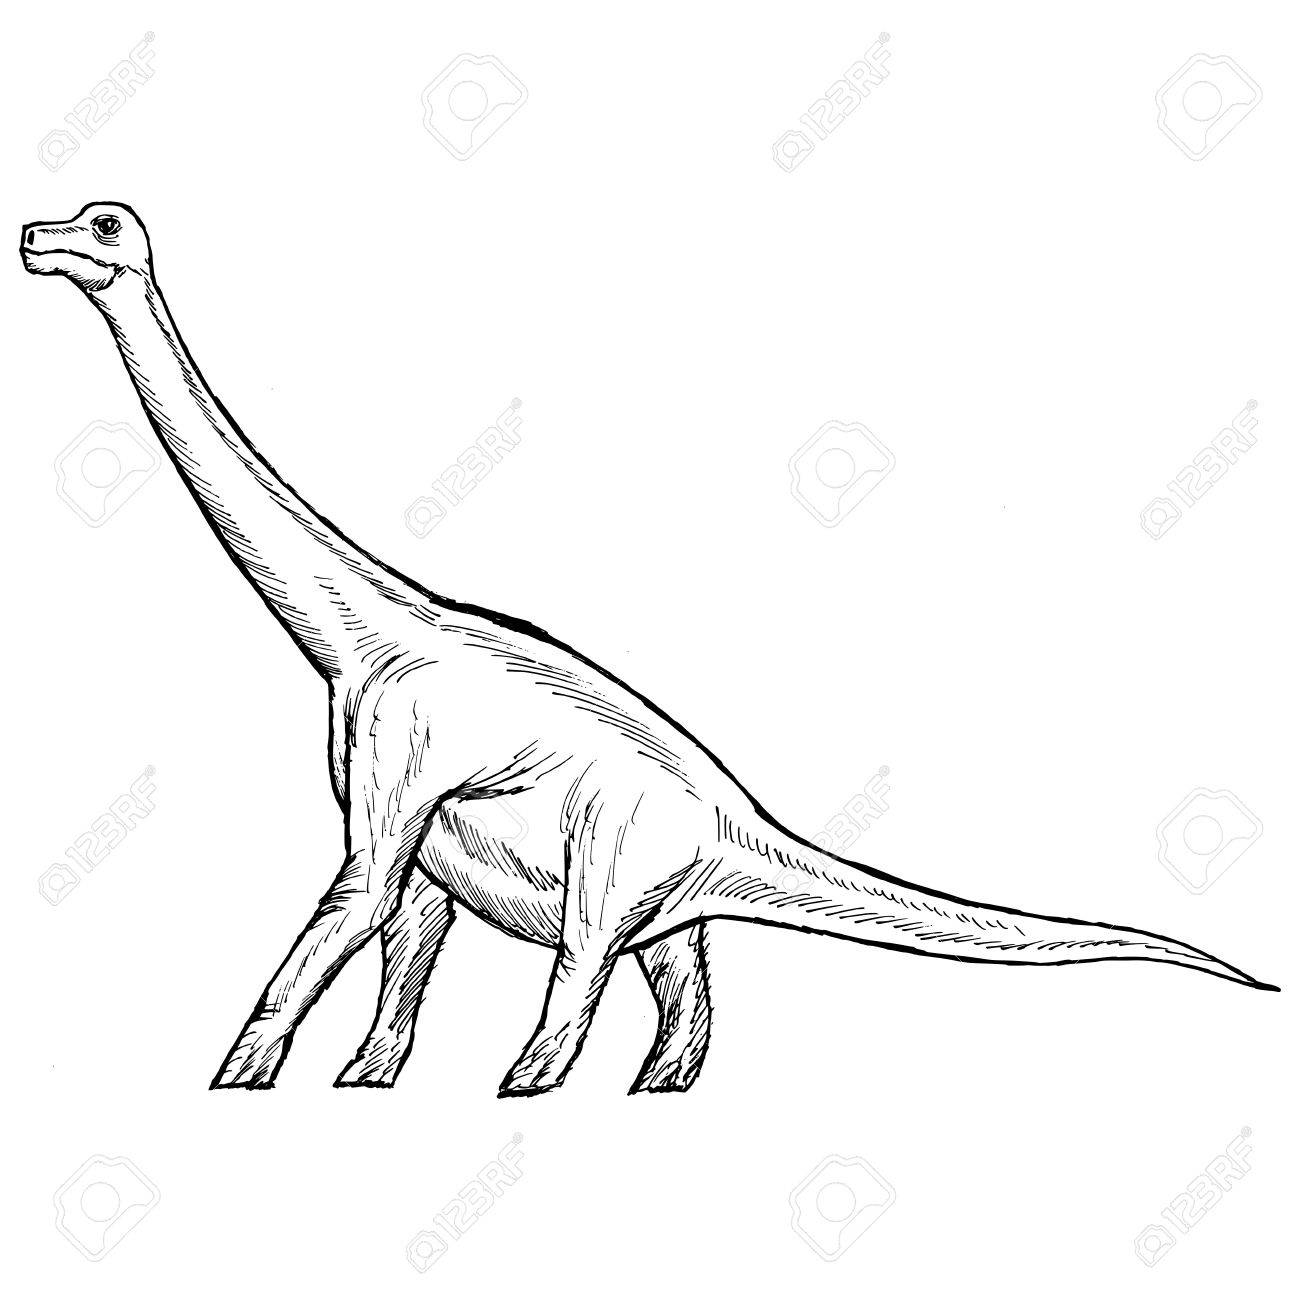 1300x1300 Hand Drawn, Sketch Illustration Of Brachiosaurus Royalty Free